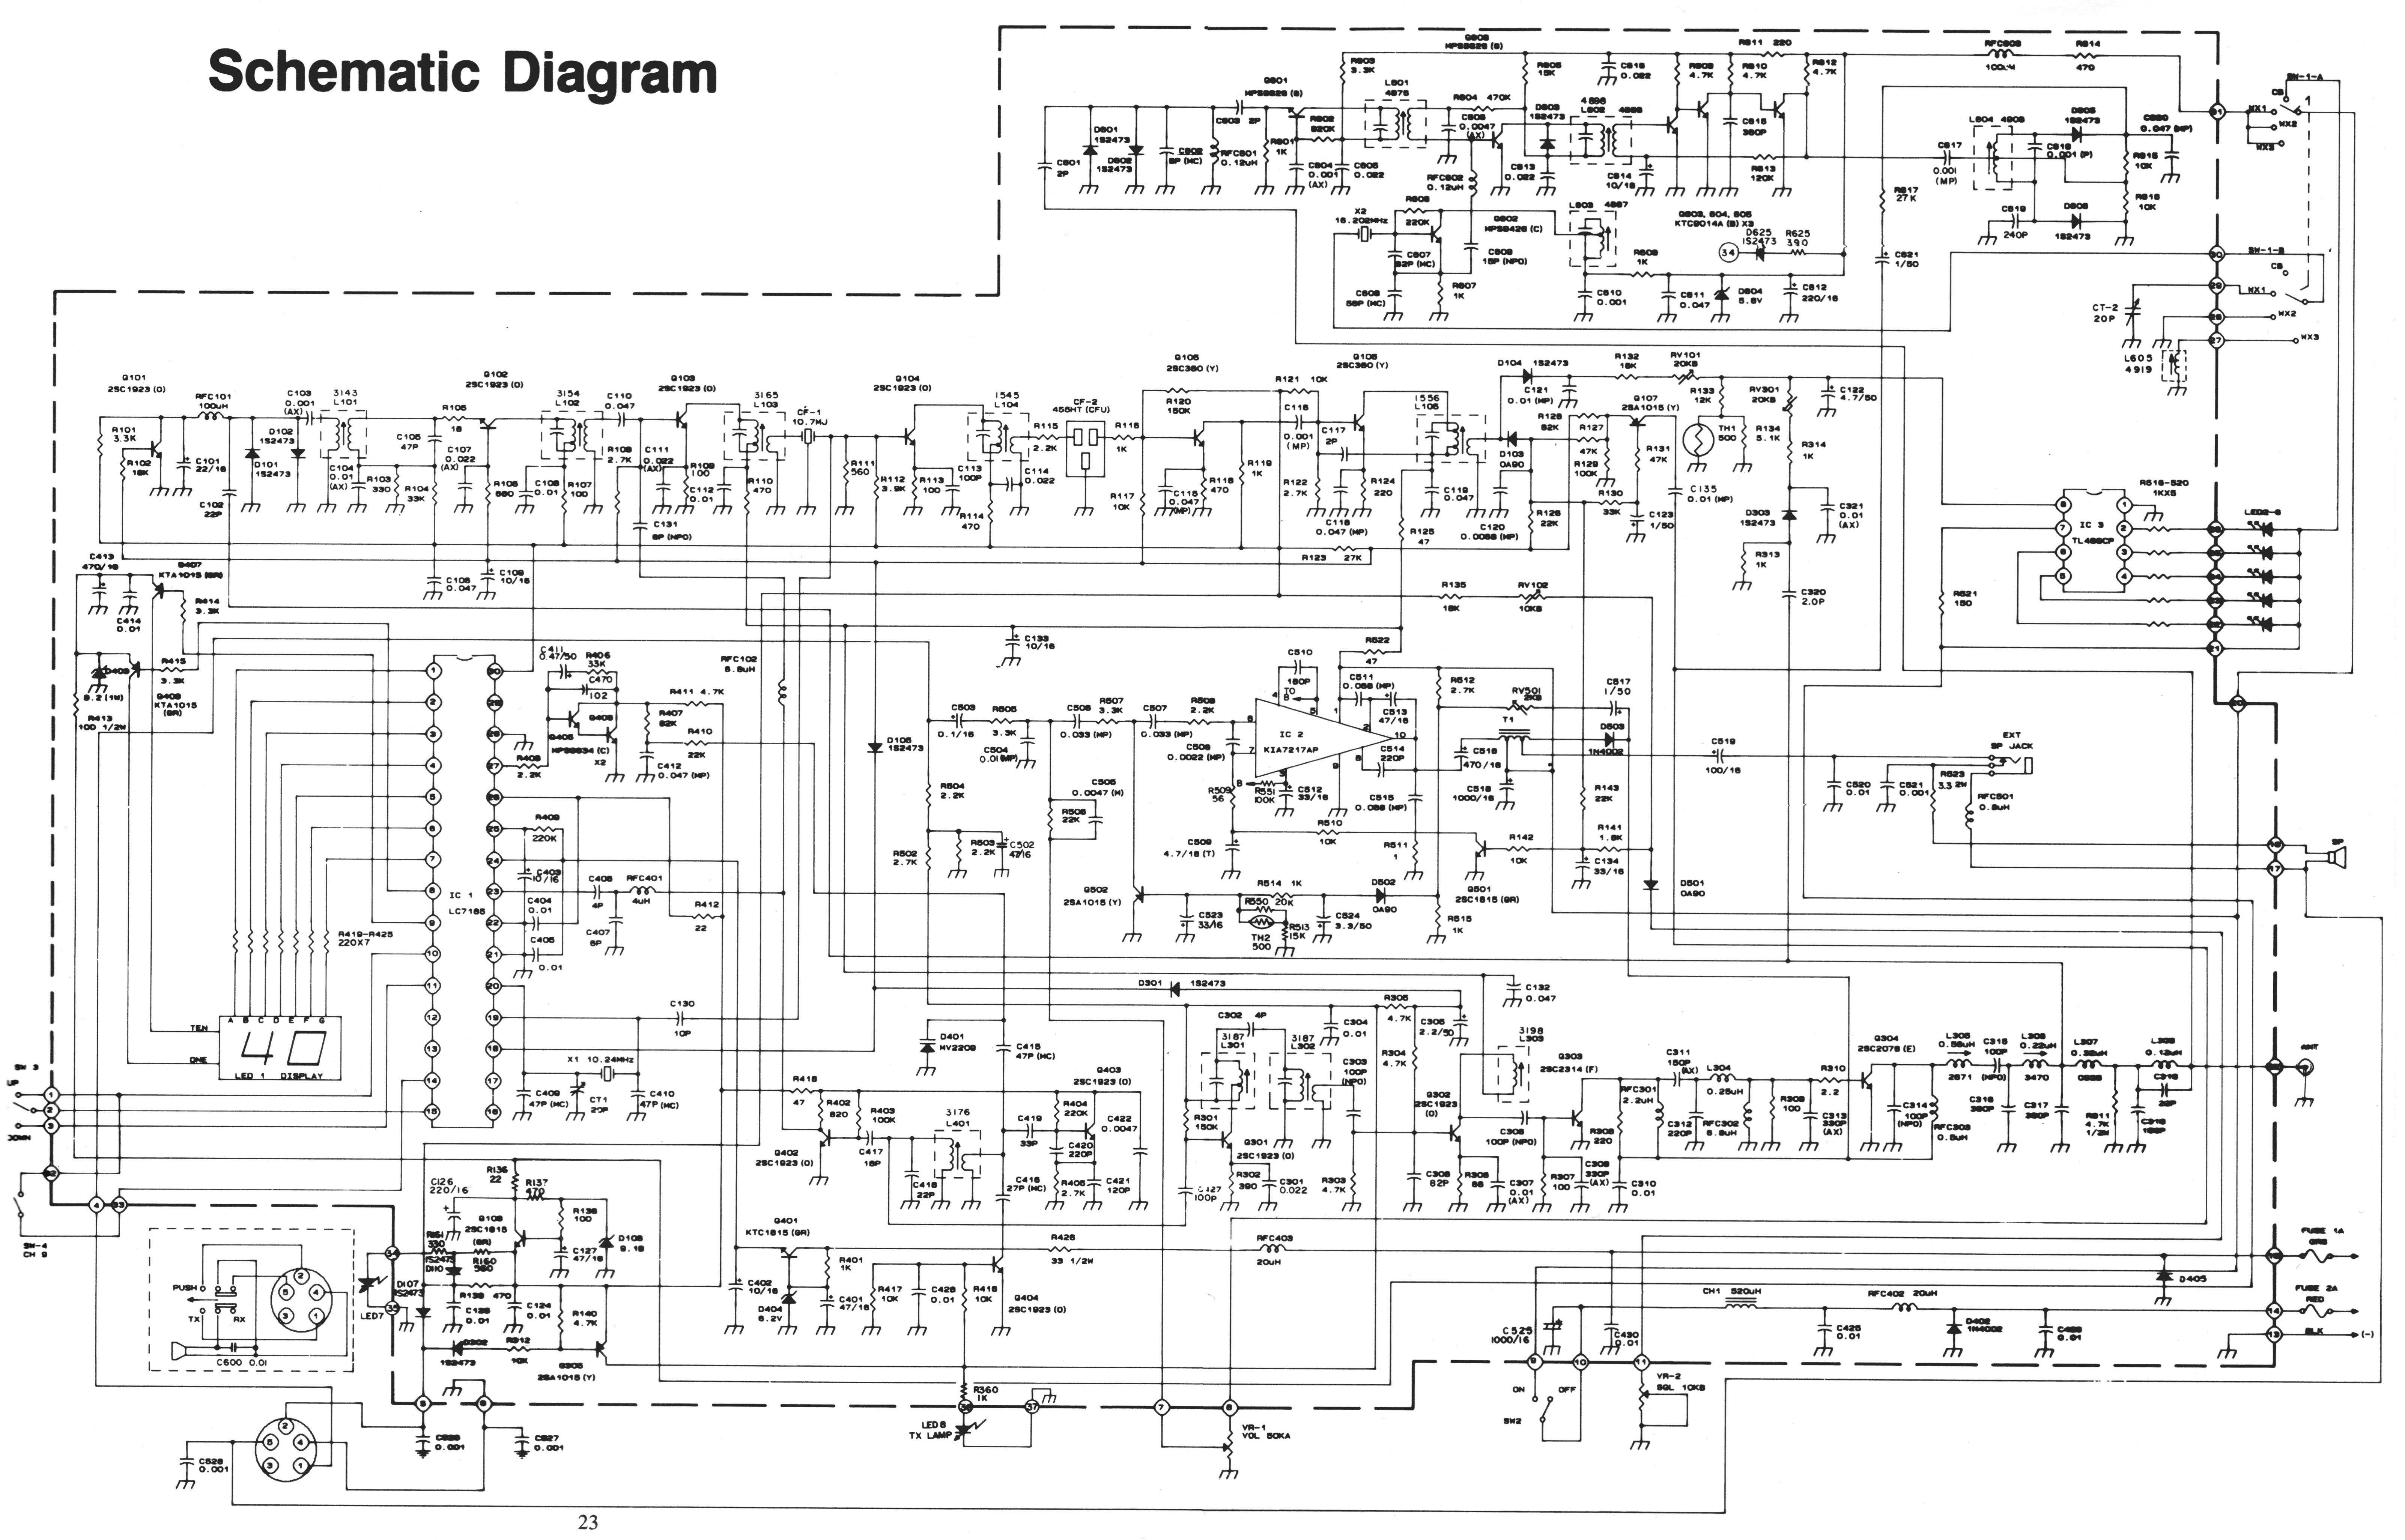 co_18_rv_sm_pg23_sch  Wire To Trailer Wiring Diagram on wilson trailer parts diagram, 4 wire trailer brake, 3 wire circuit diagram, 4 wire electrical diagram, 4 wire trailer lighting, 4 wire trailer hitch diagram,